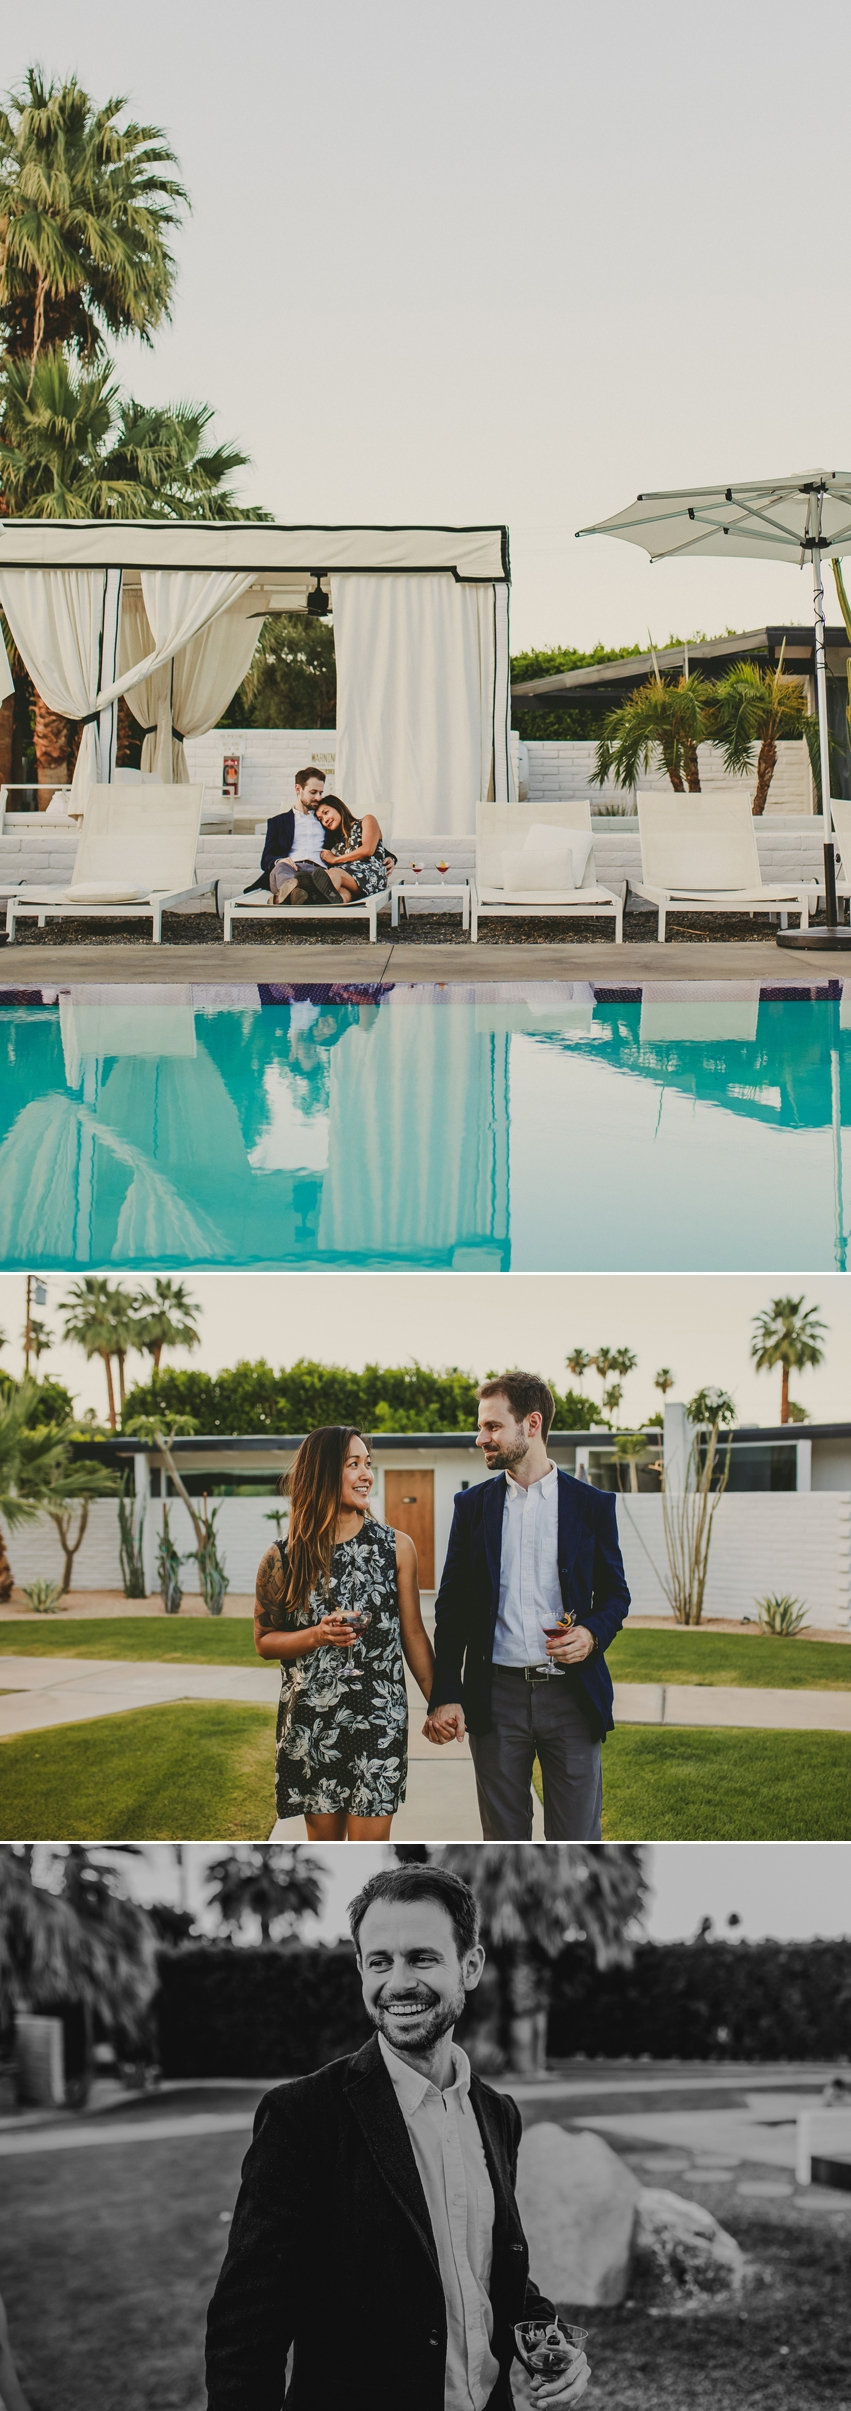 Wedding Proposal In Palm Springs